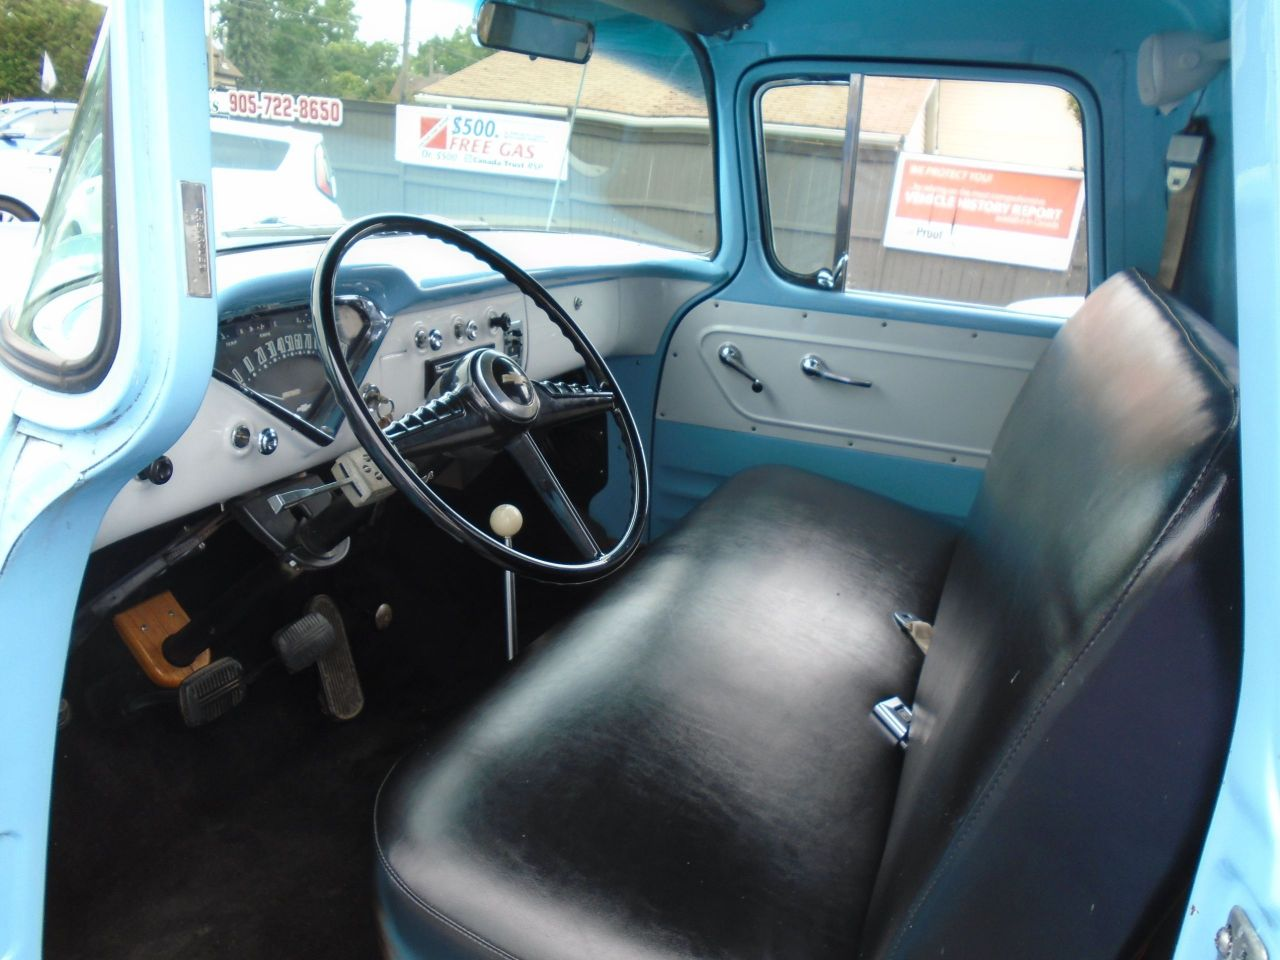 1955 Chevrolet Pickup (Other)